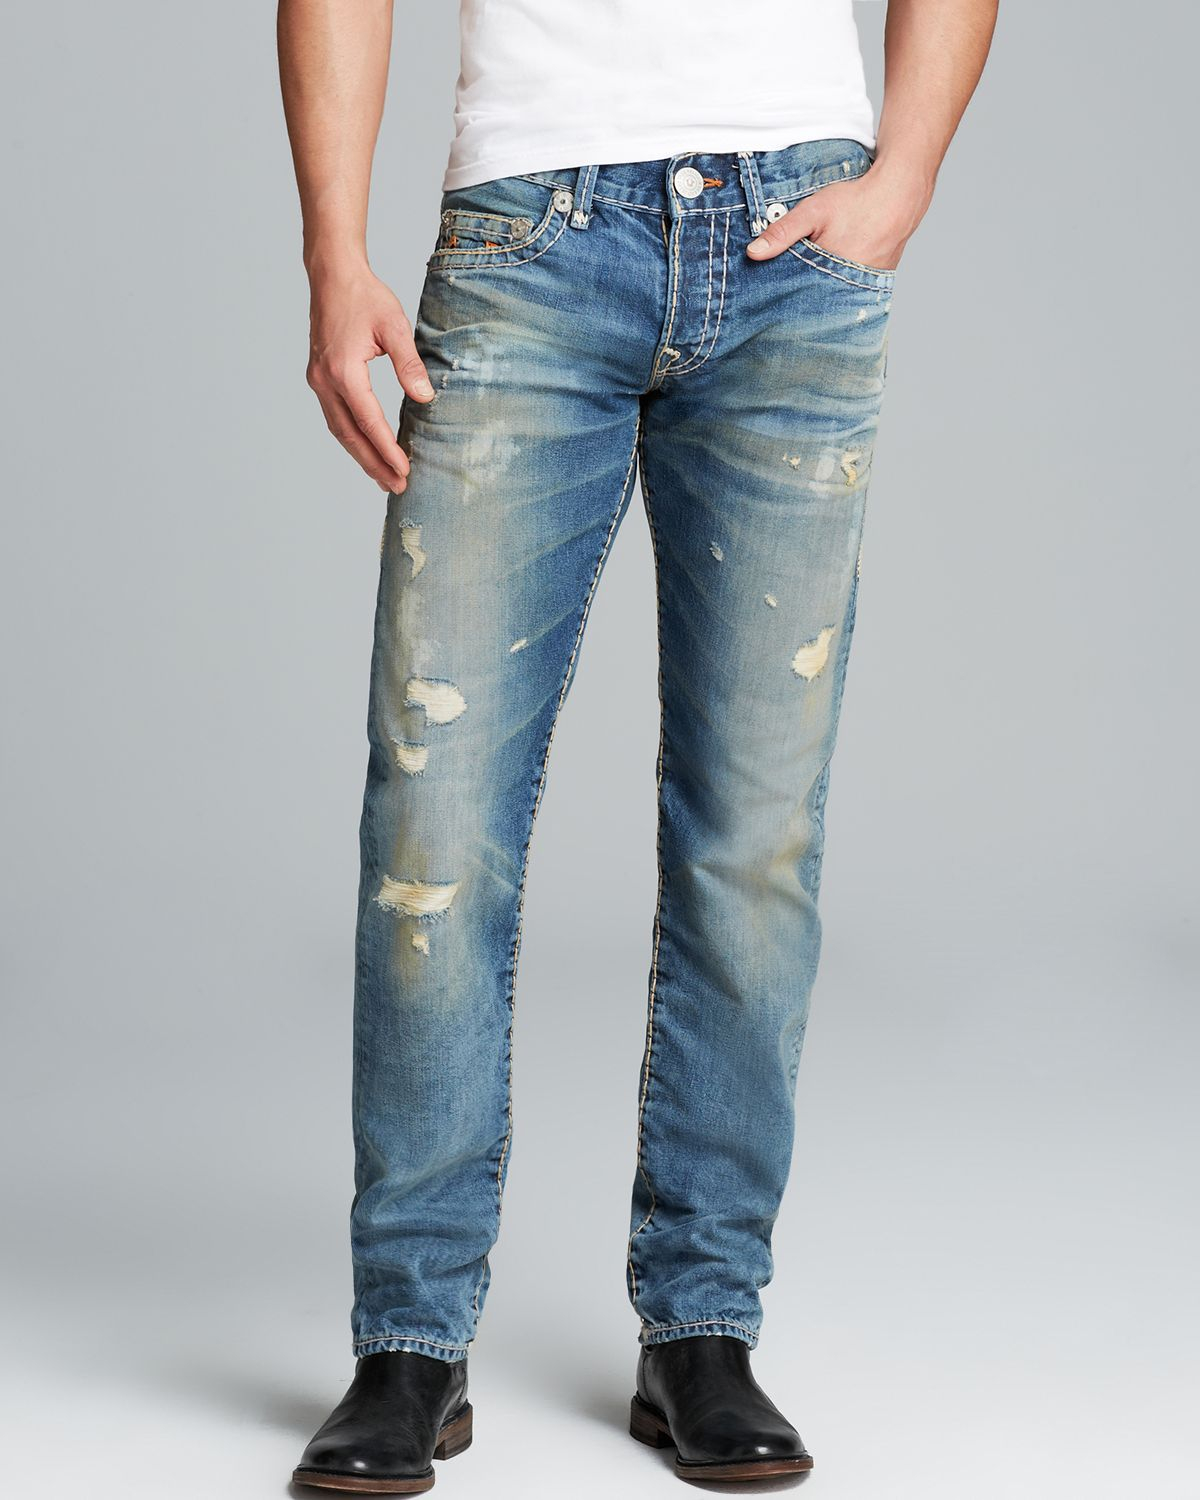 lyst true religion jeans geno super t distressed straight fit in greatest hits in blue for men. Black Bedroom Furniture Sets. Home Design Ideas